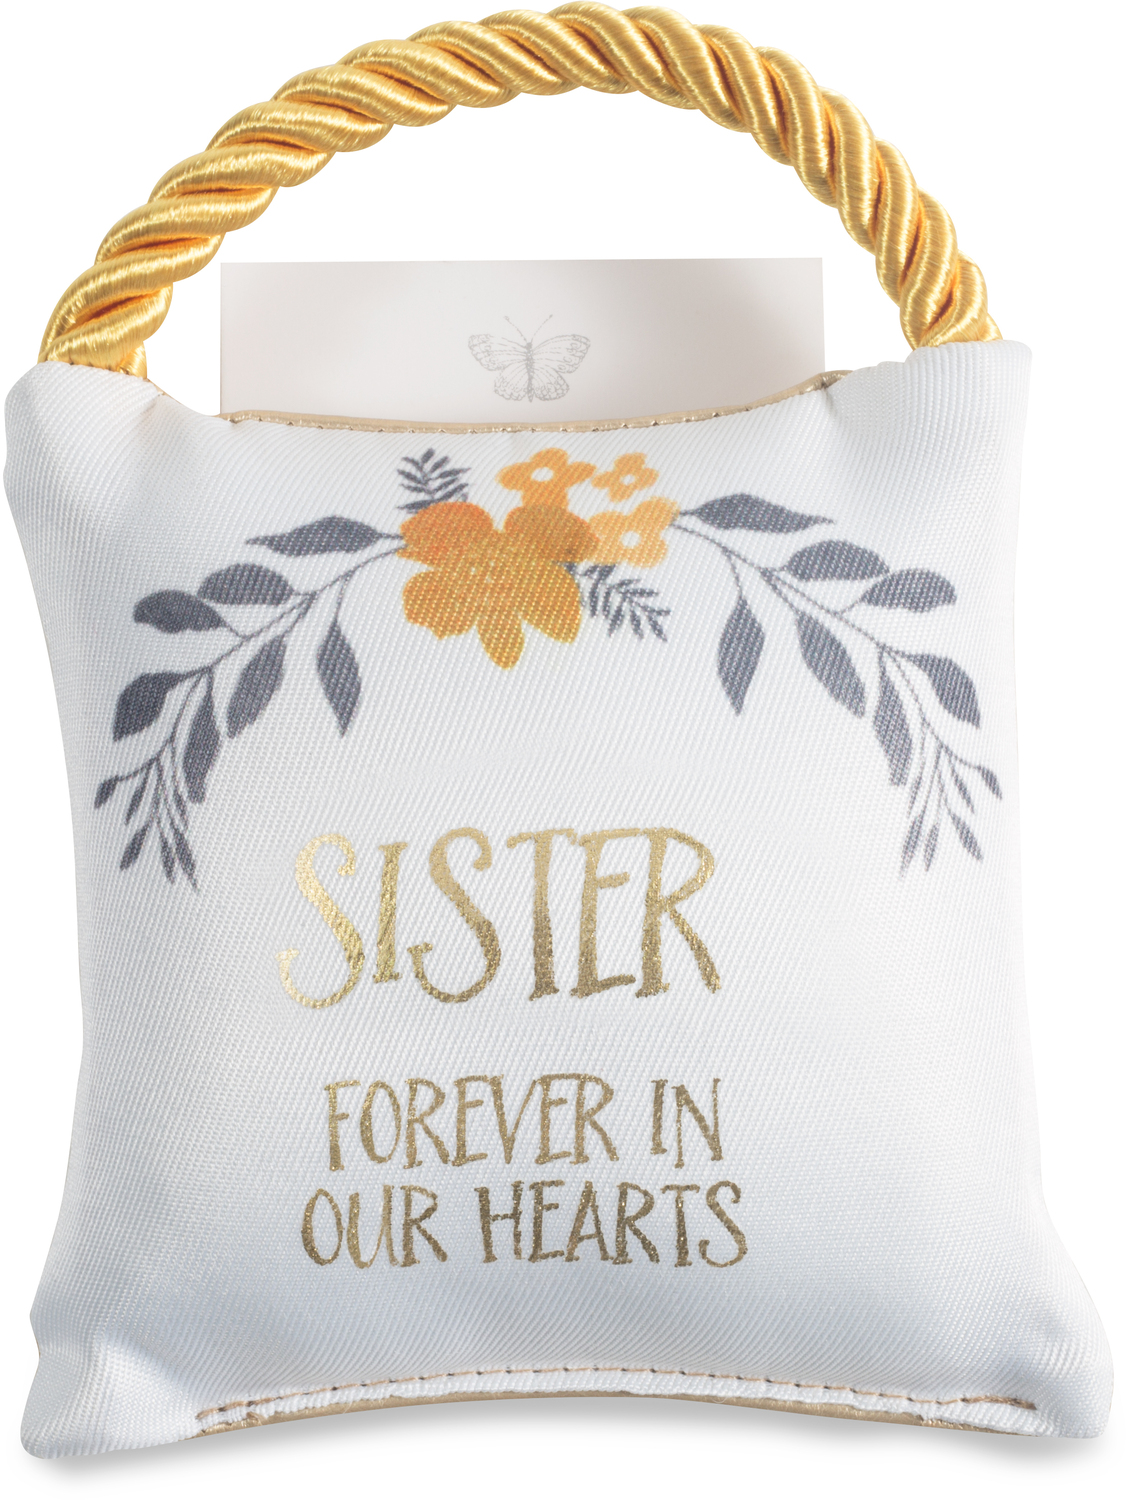 "Sister by Butterfly Whispers - Sister - 4.5"" Memorial Pocket Pillow"